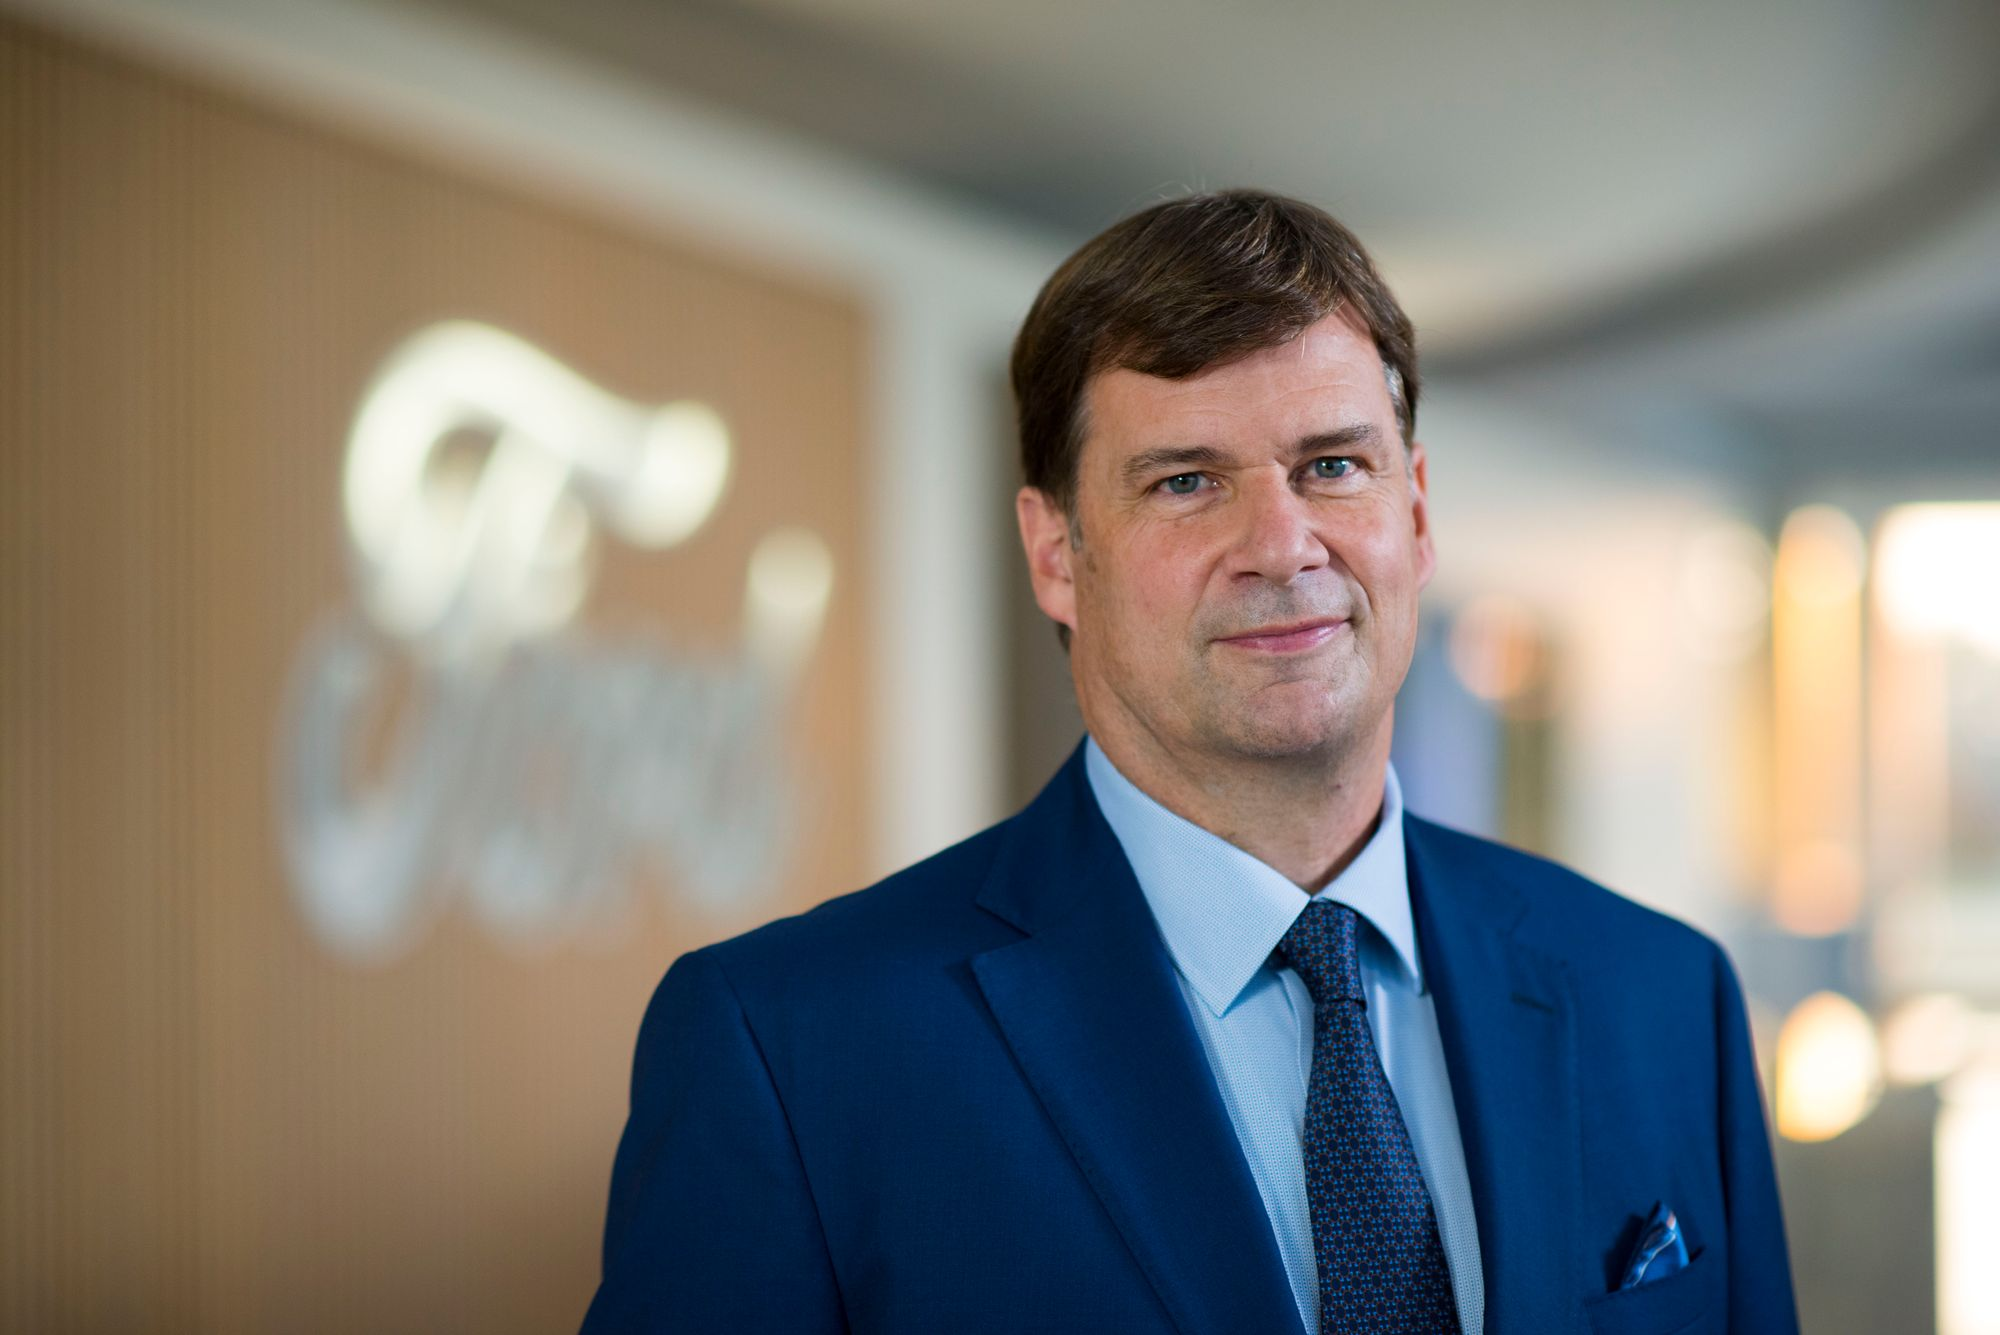 Jim Farley, President and CEO, Ford Motor Company